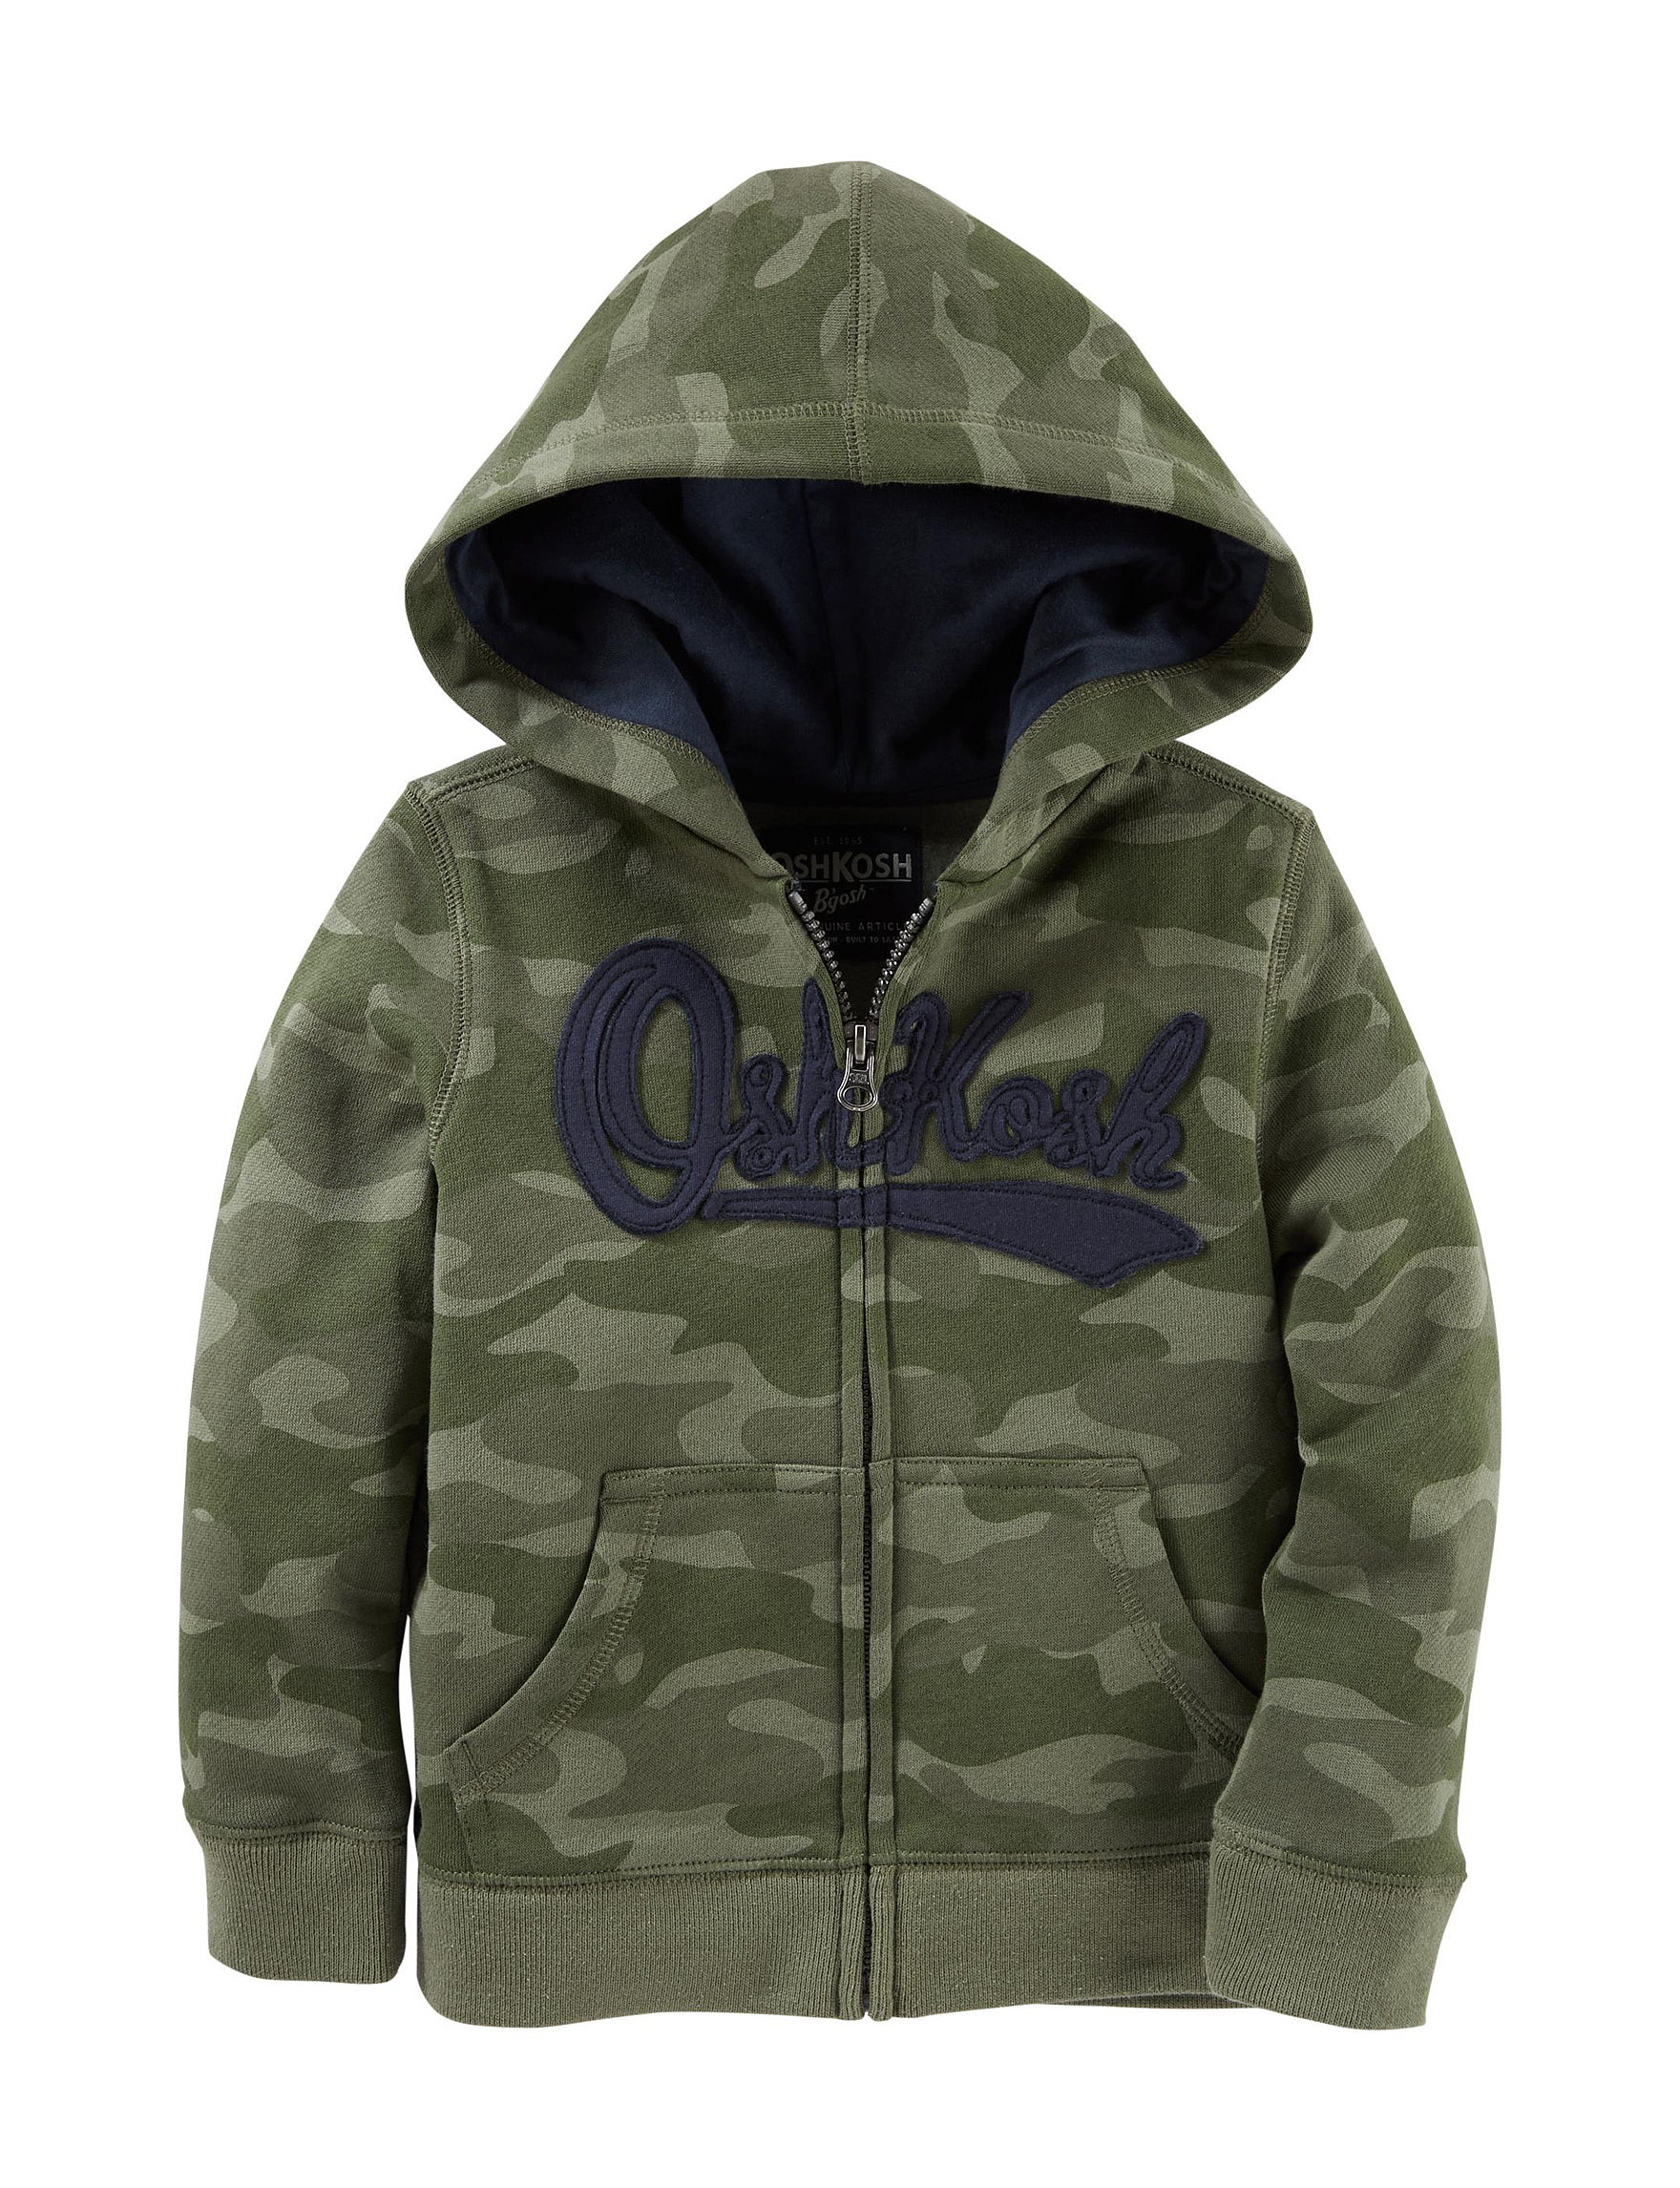 Oshkosh B'Gosh Multi Fleece & Soft Shell Jackets